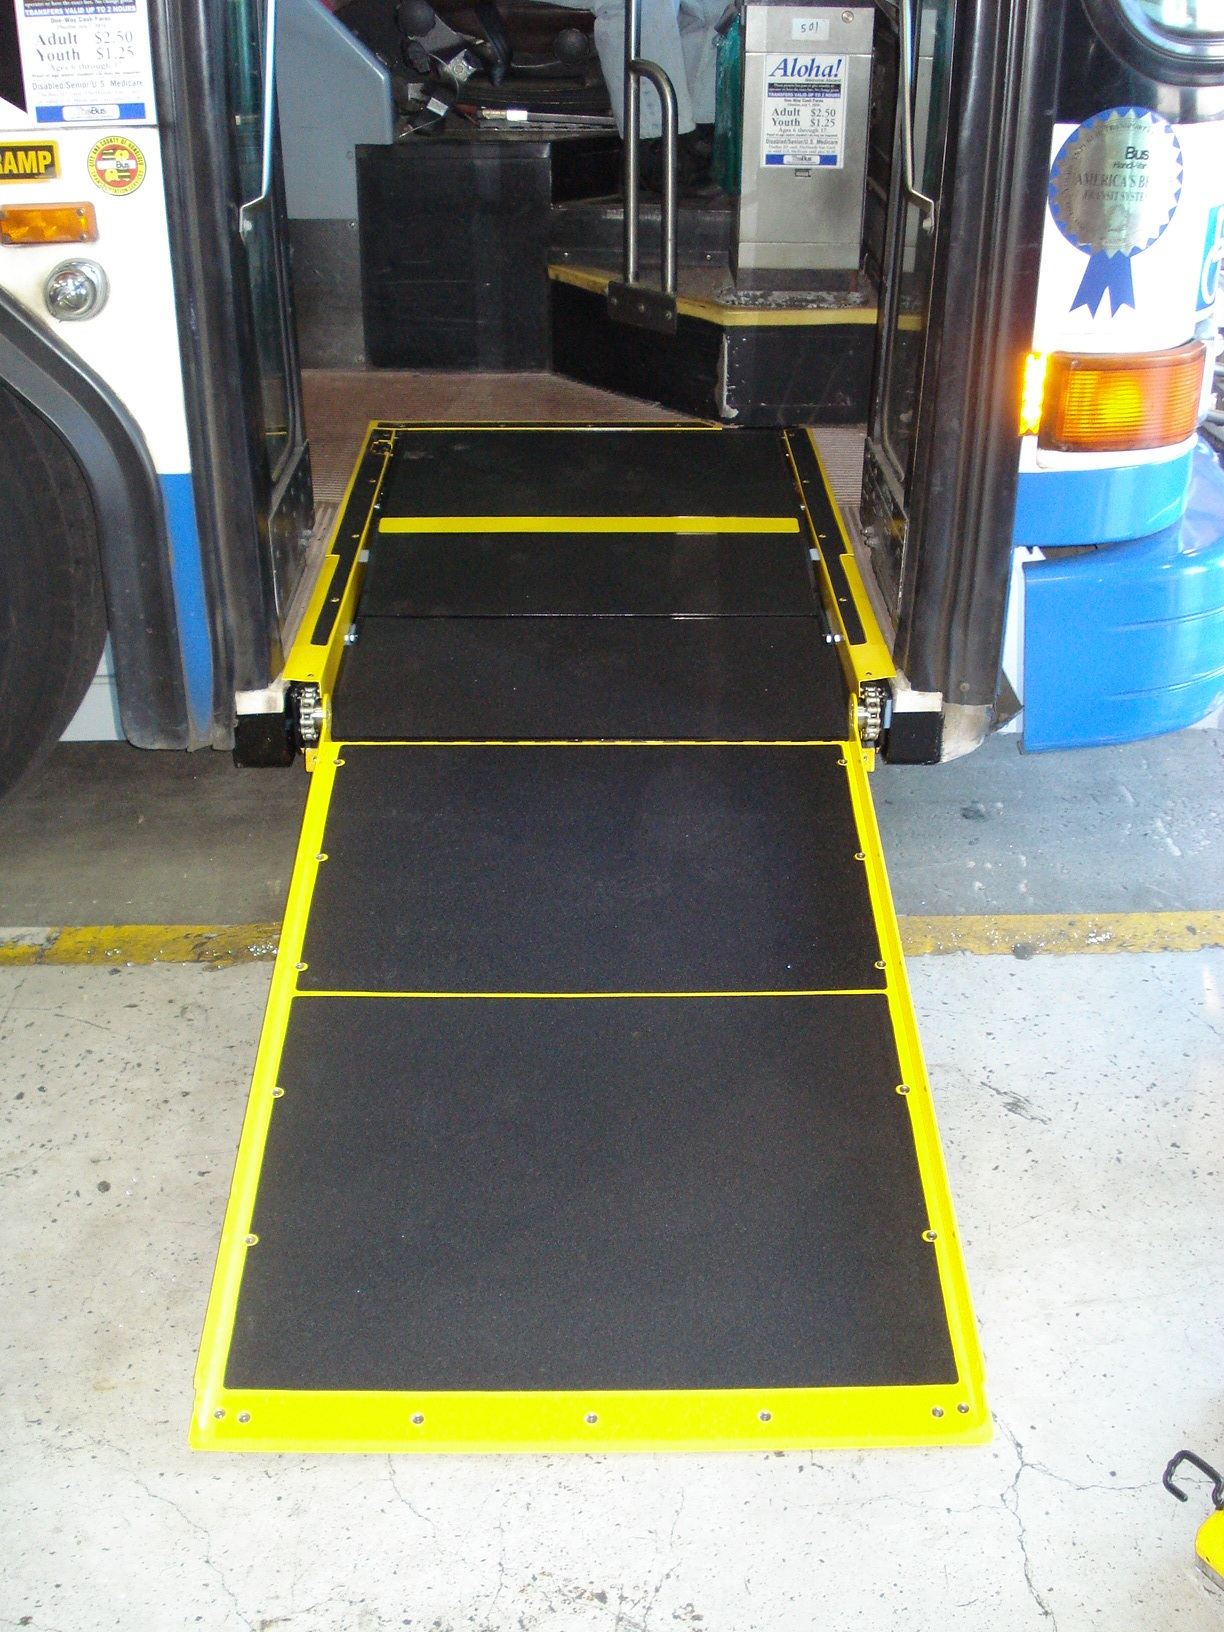 New ramp deployed to ground to allow wheelchair access to the bus.